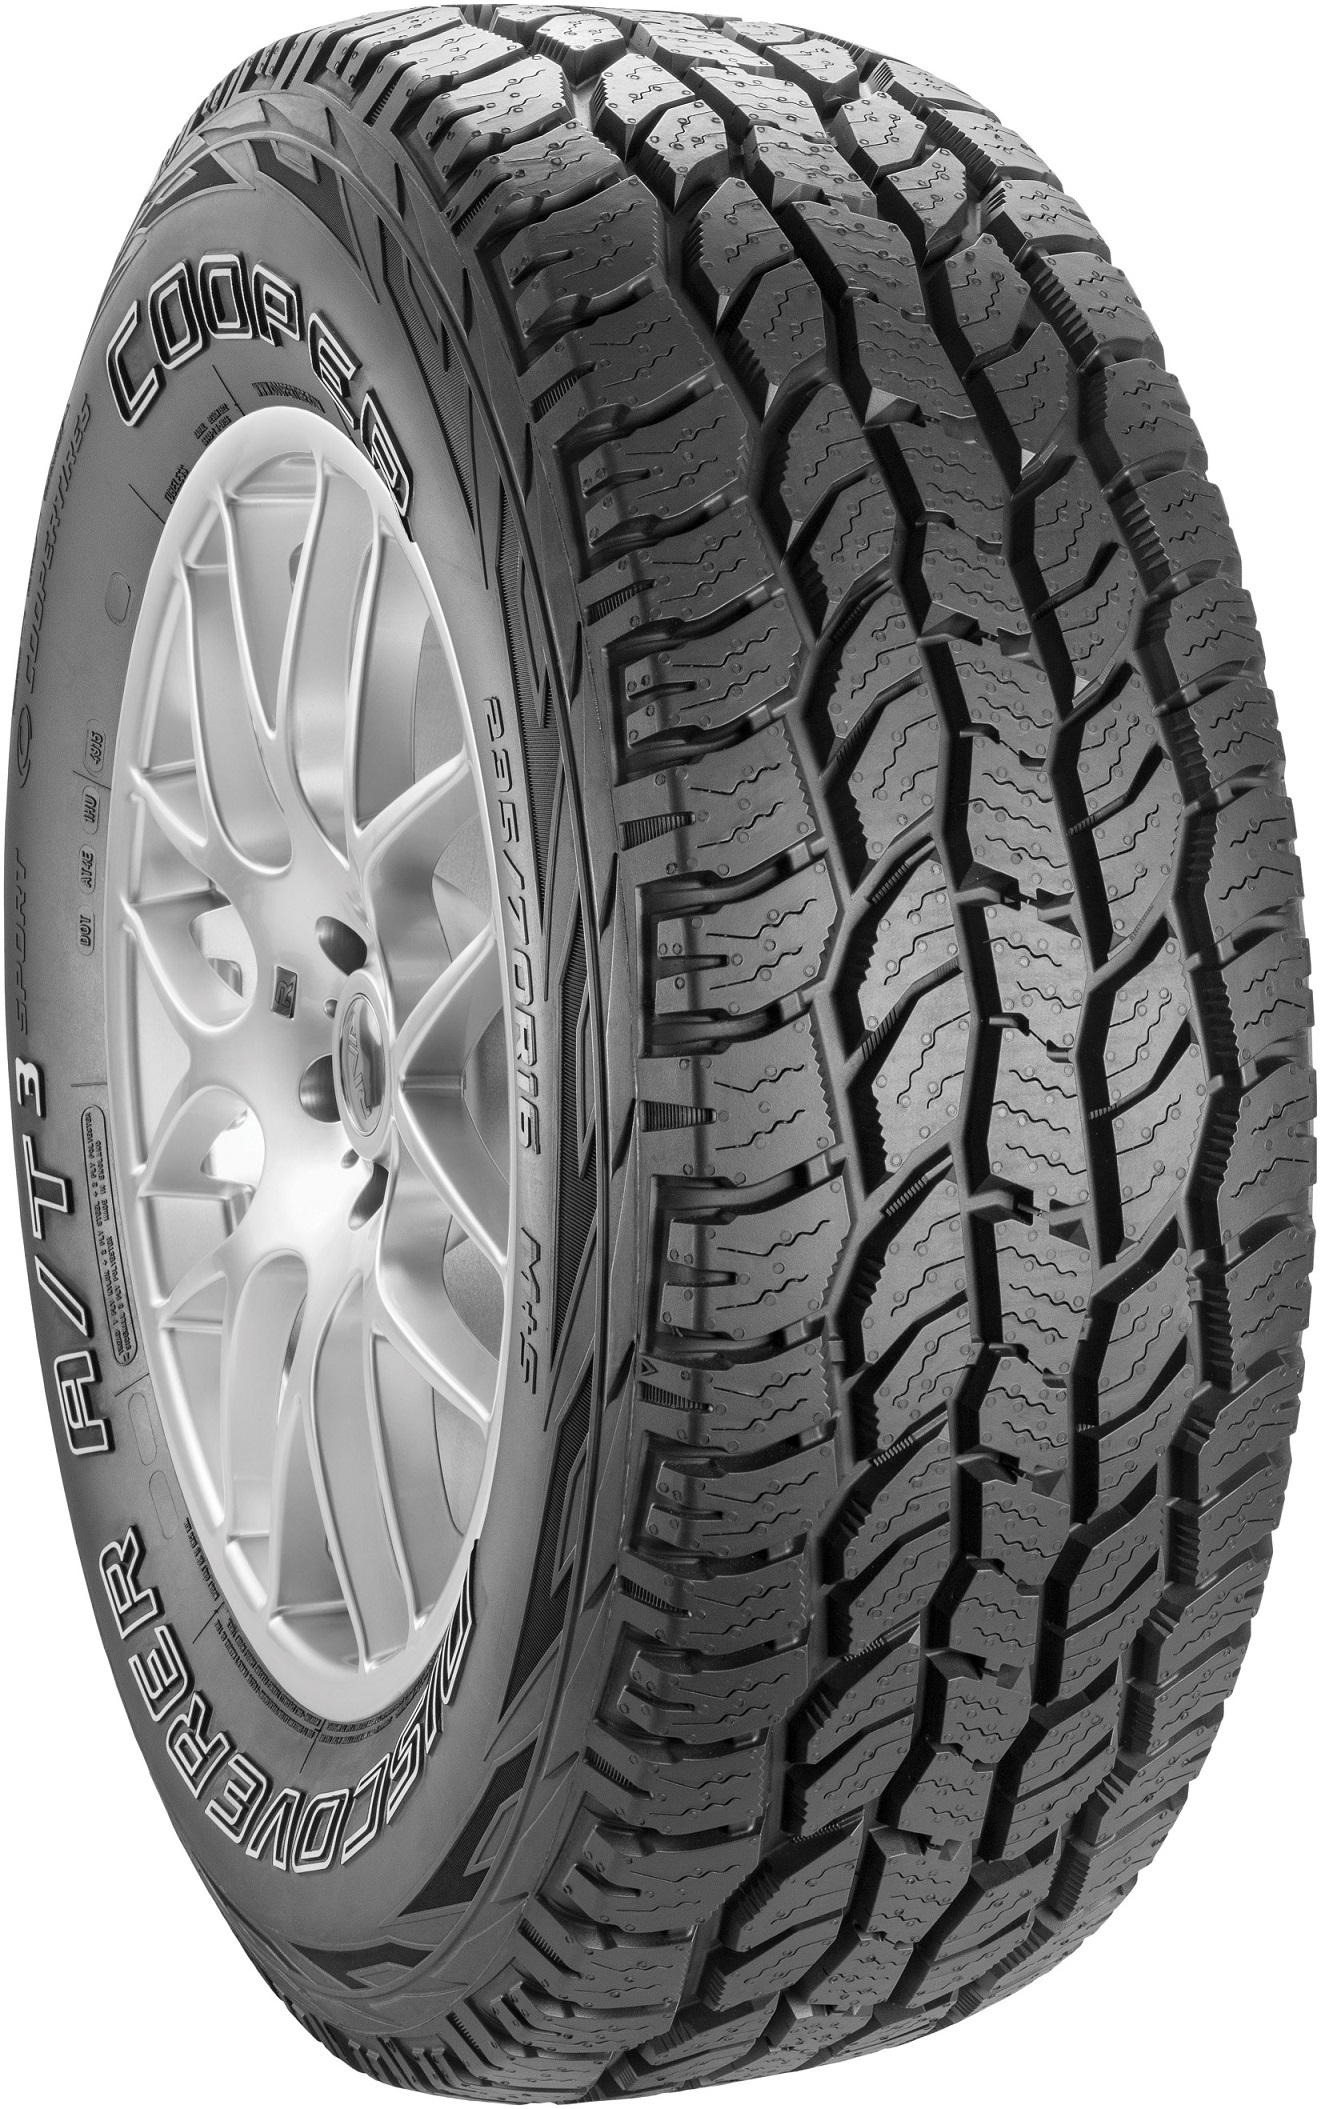 Cooper DISCOVERER A/T3 SPORT 225/70 R15 DISCOVE RE R A/T3 SPO RT 100T OWL